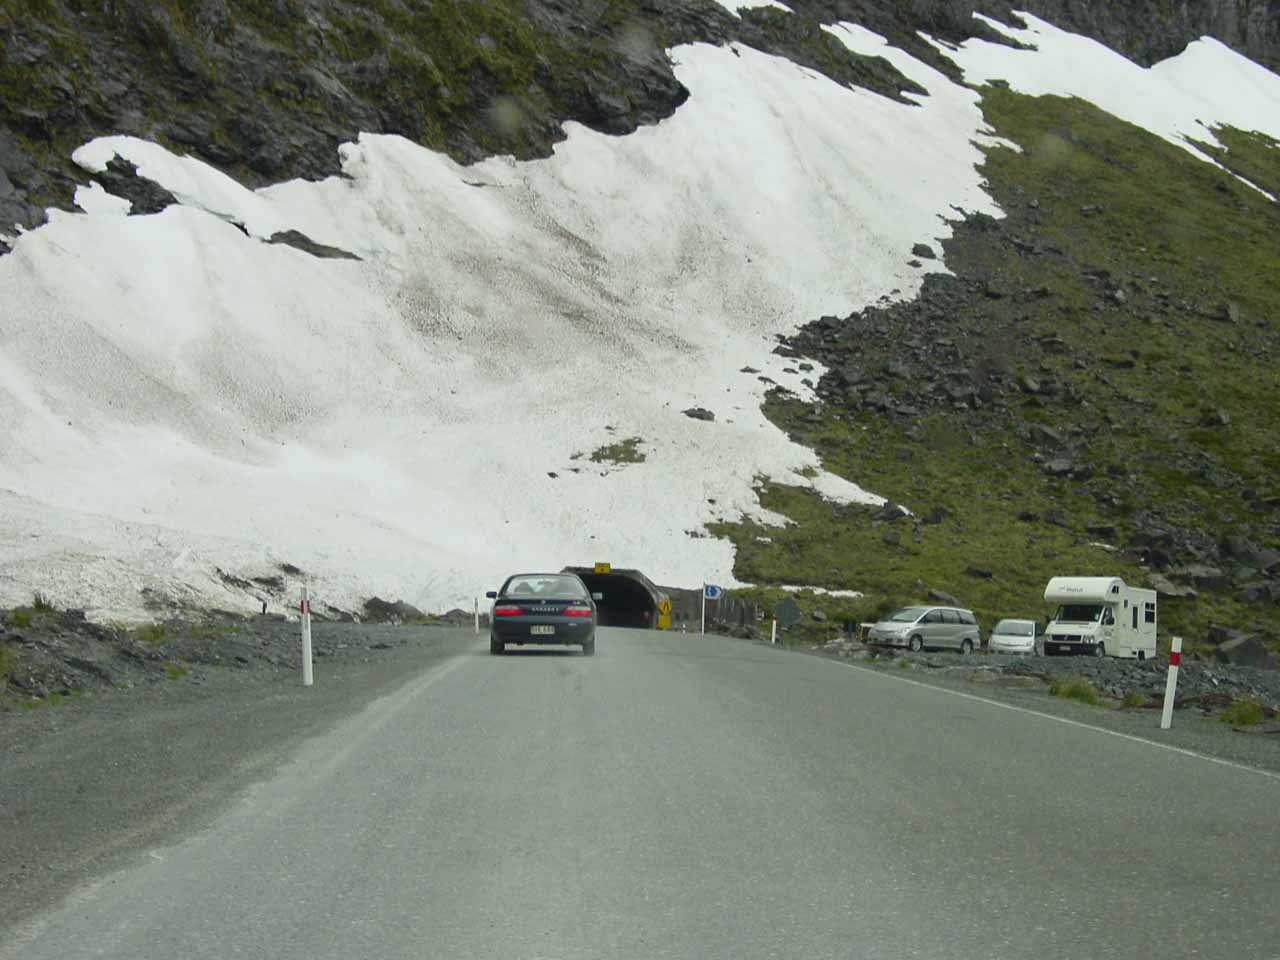 Entering the Homer Tunnel